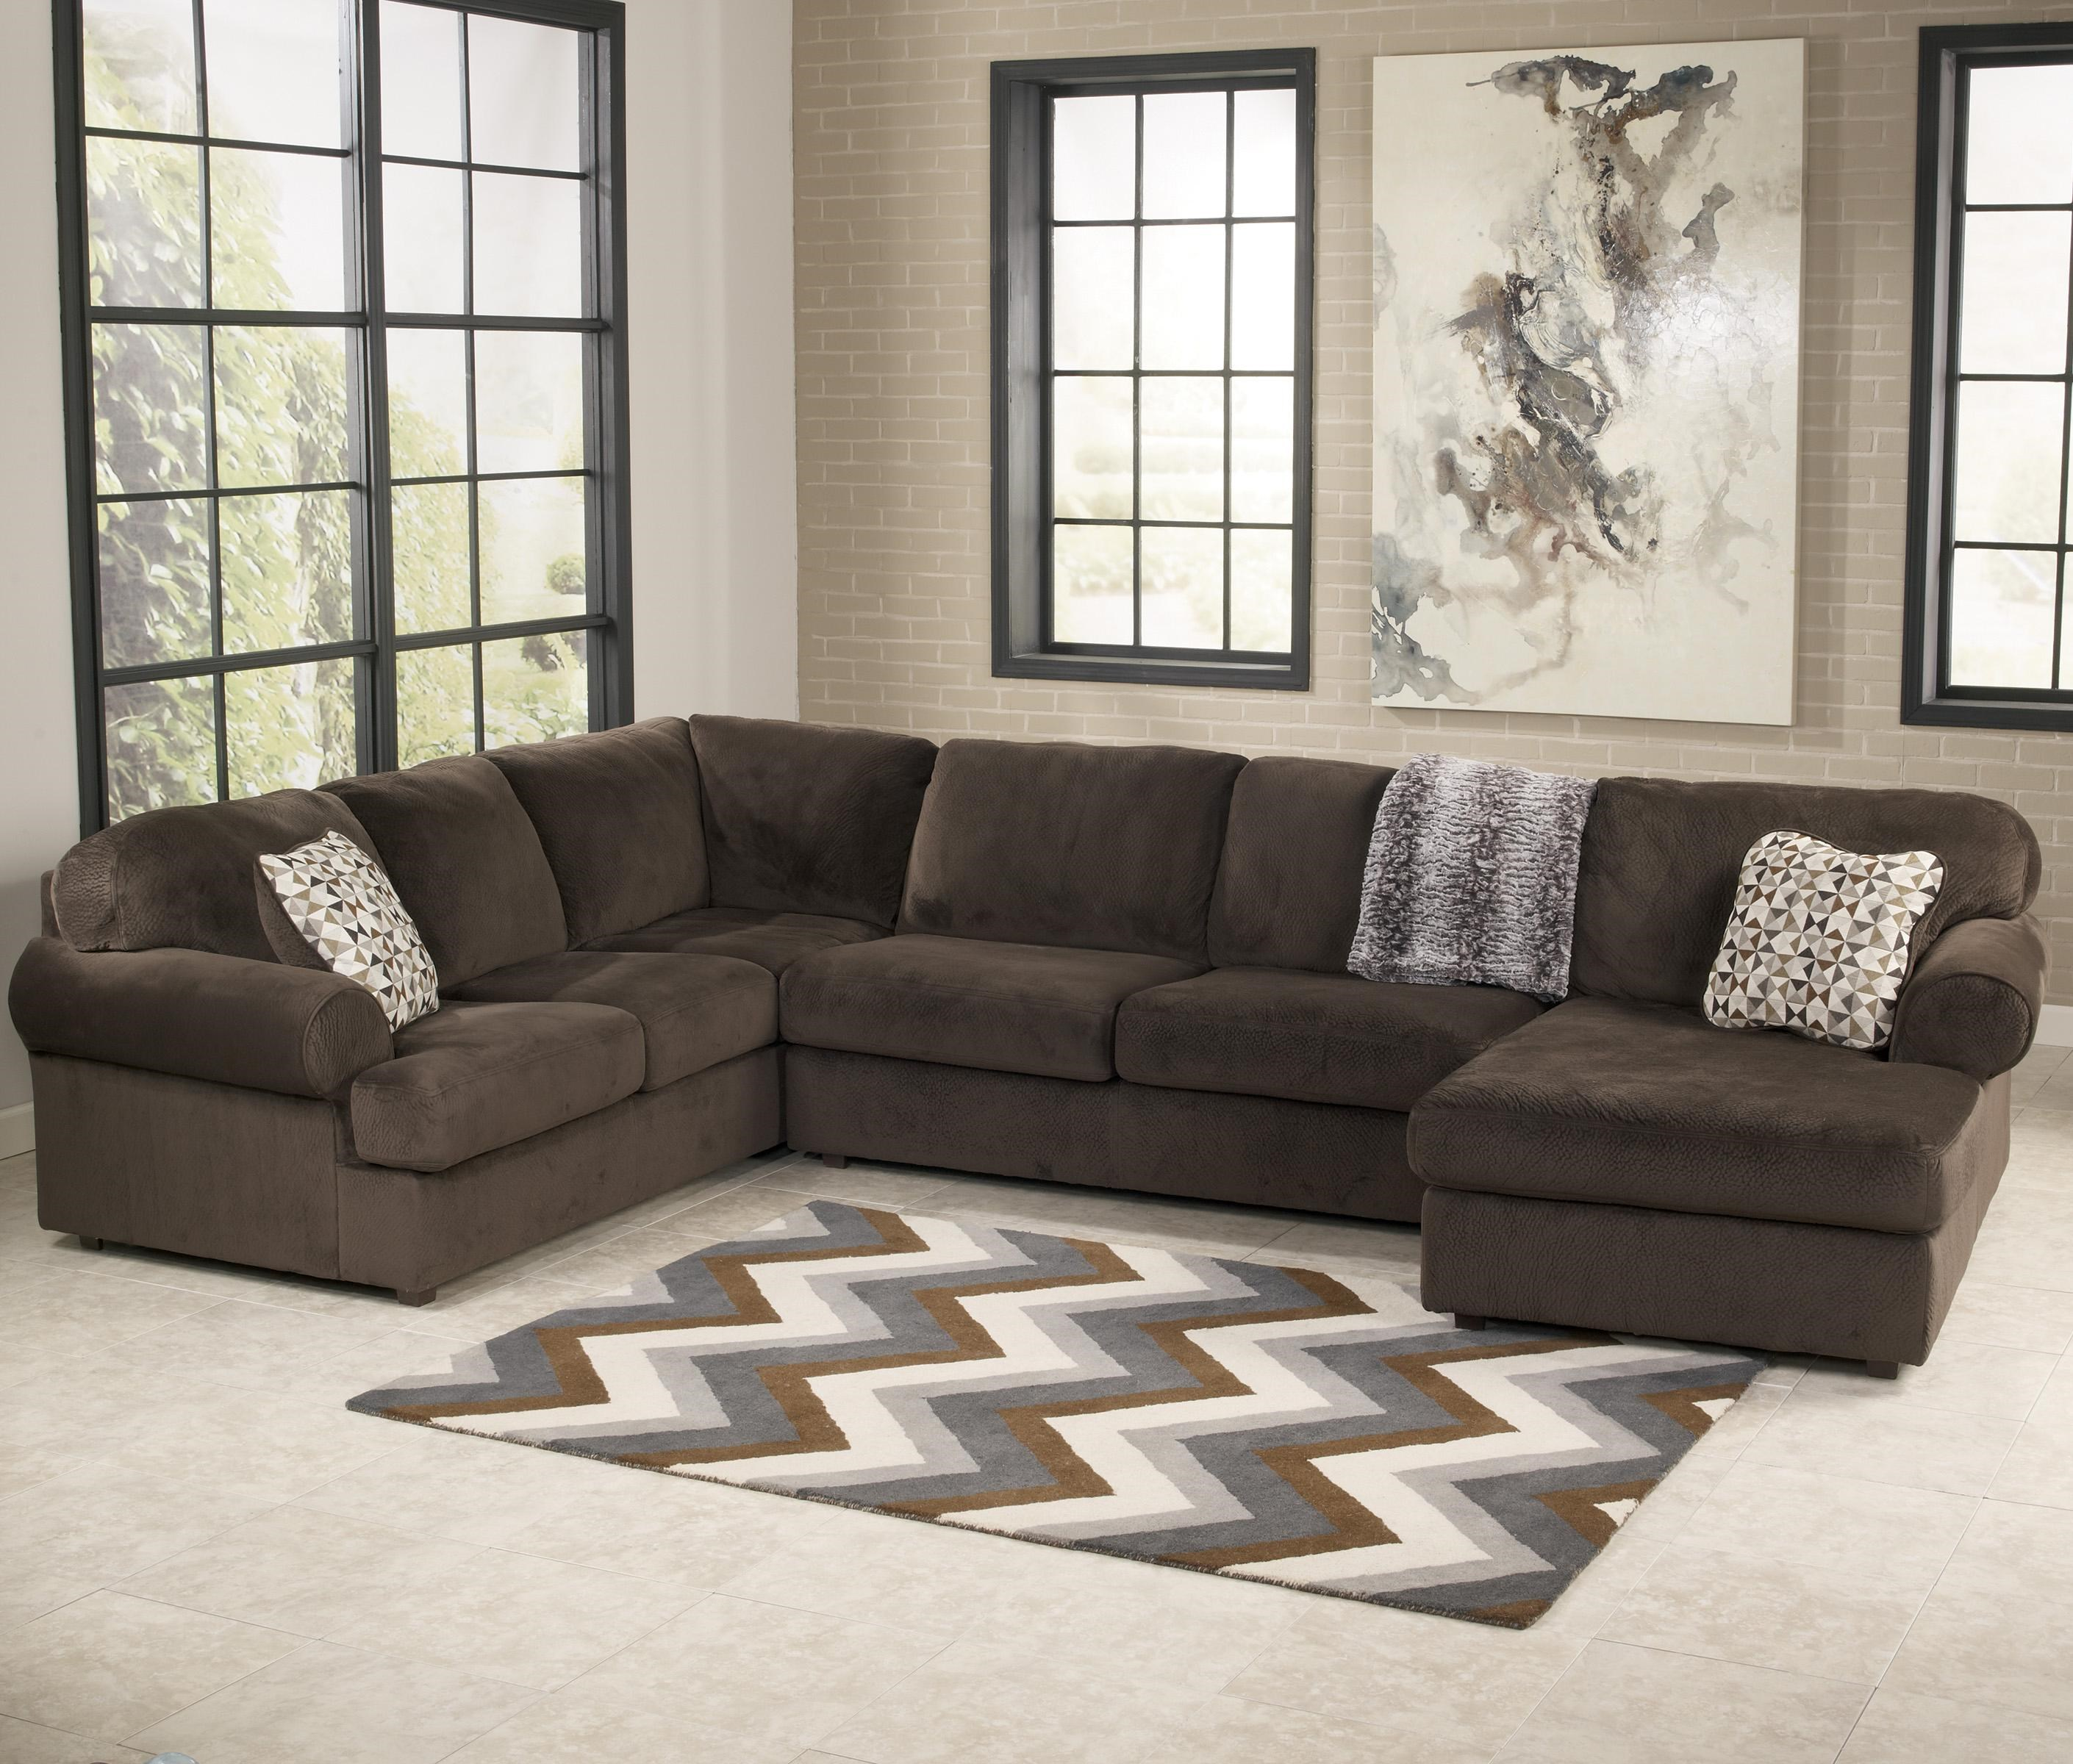 Signature Design By Ashley Jessa Place   Chocolate Casual Sectional Sofa  With Right Chaise